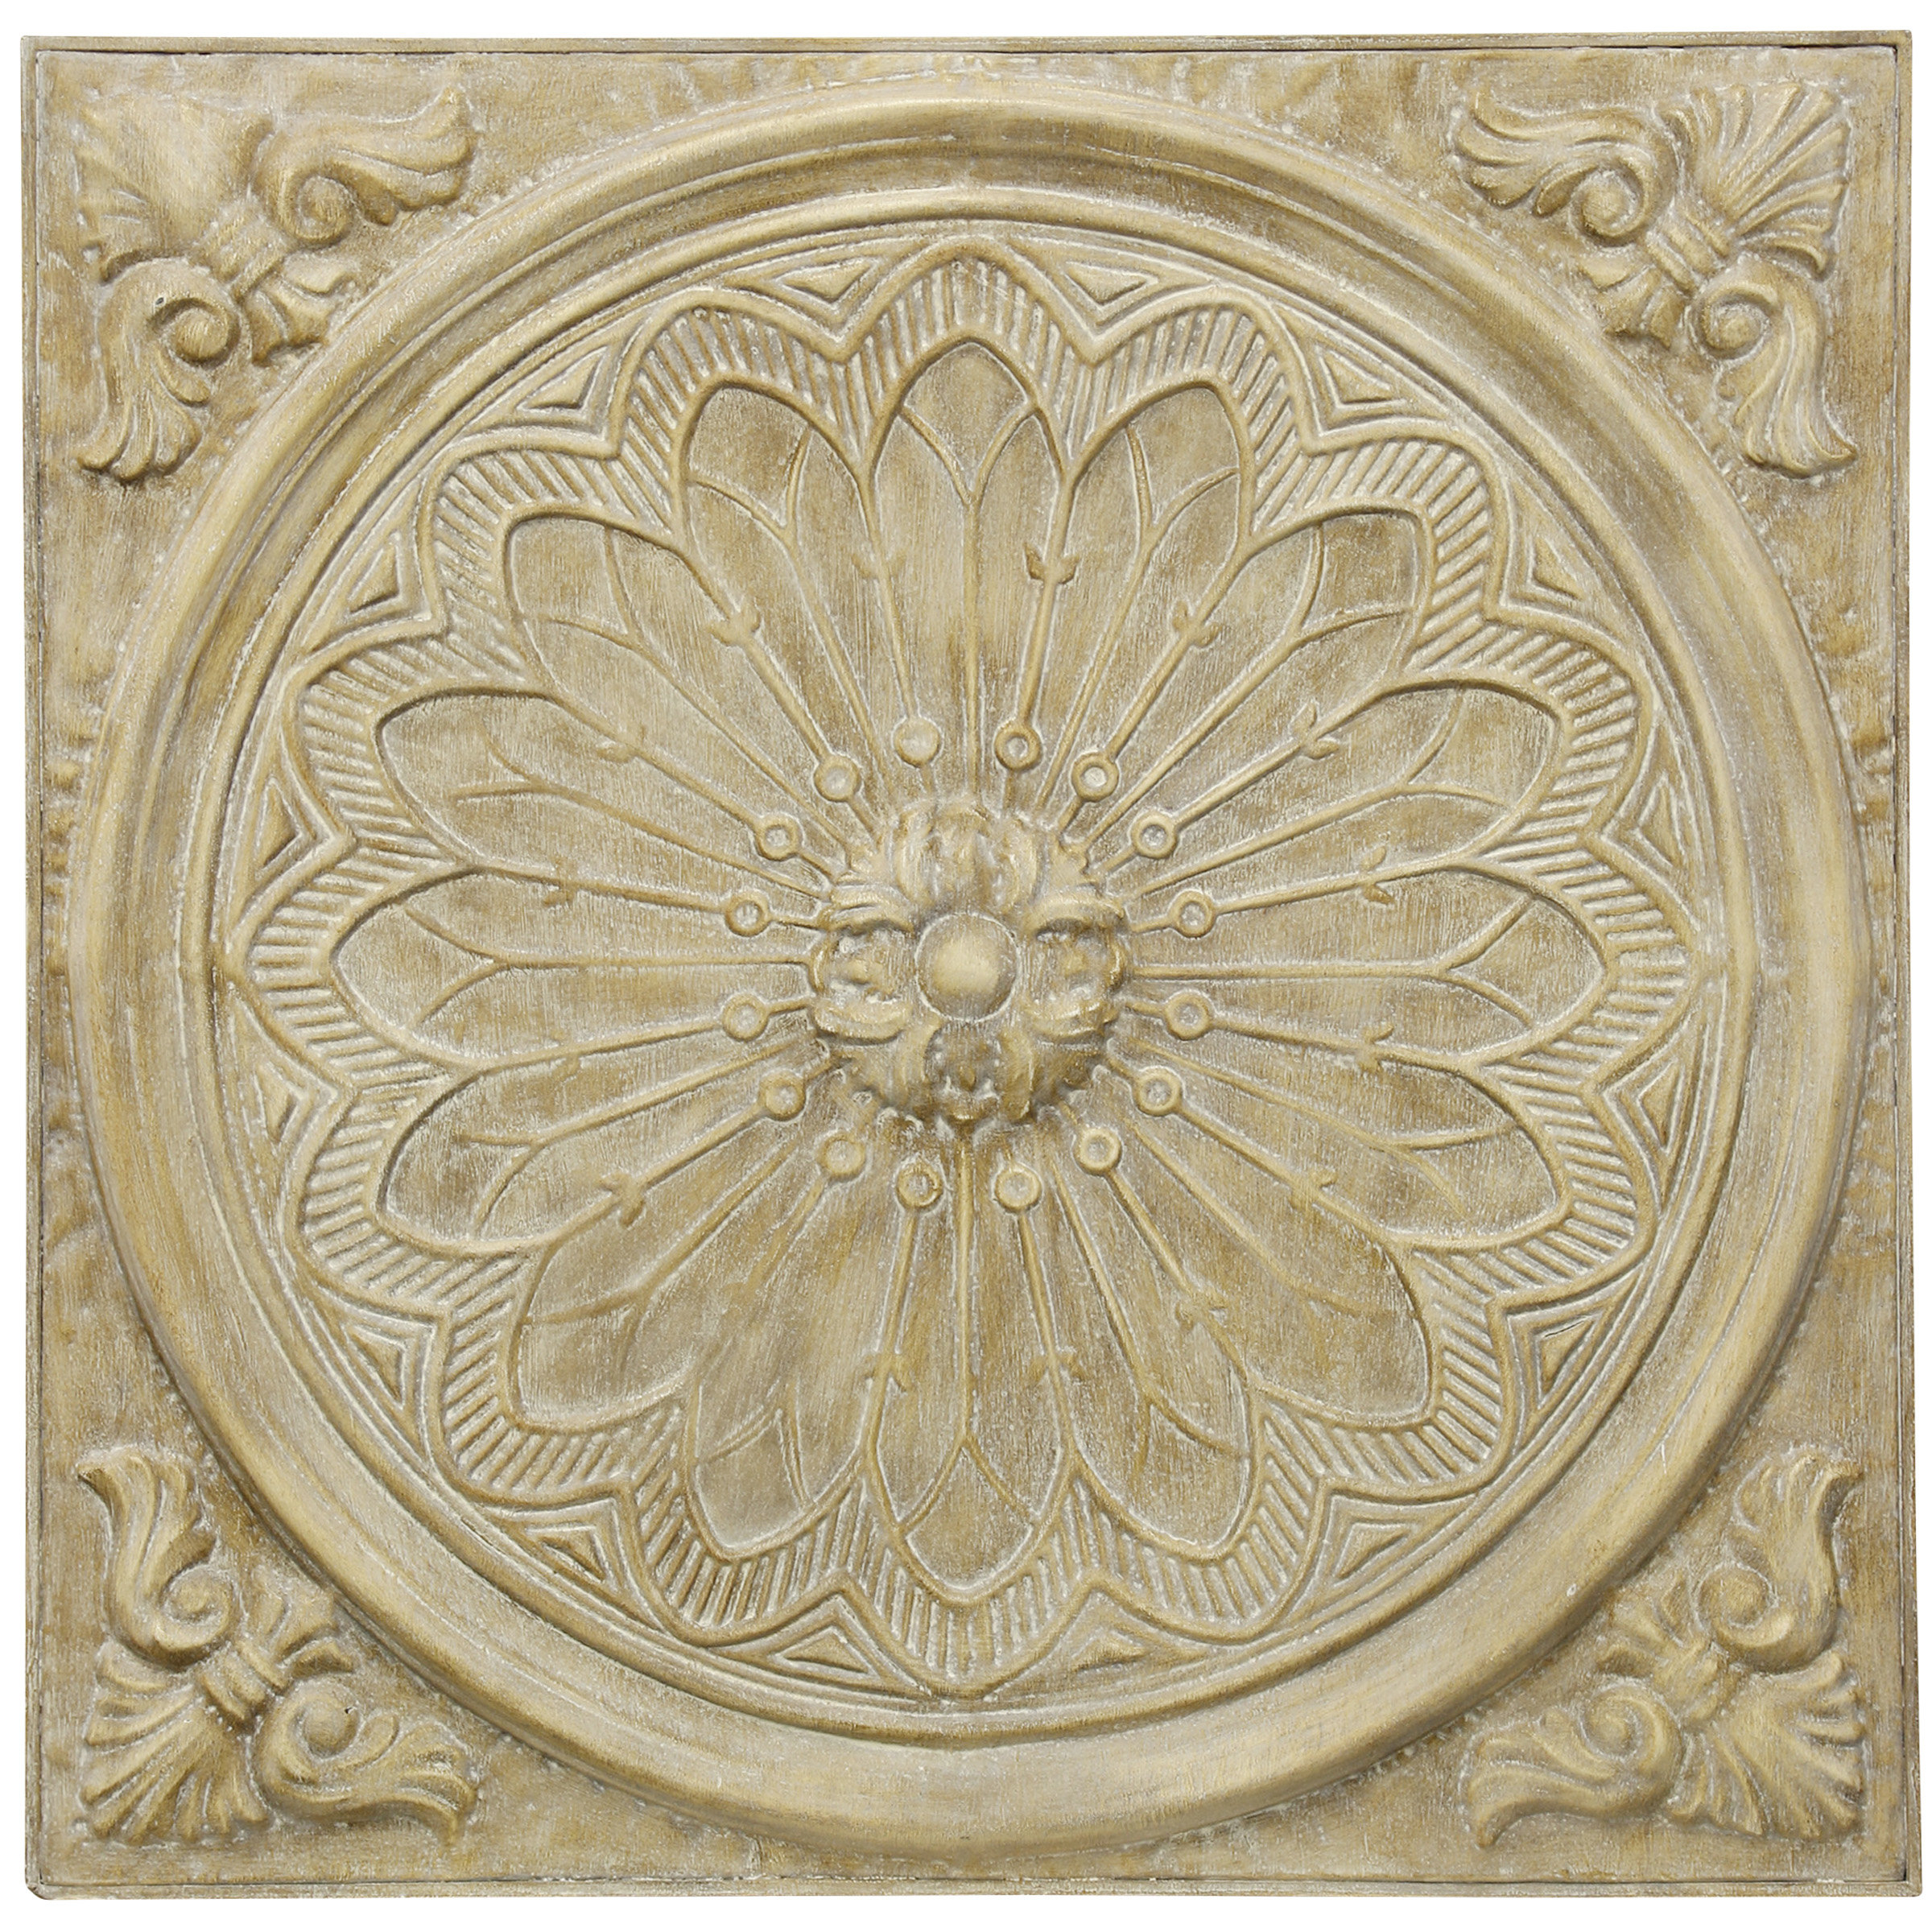 Medallion Wall Decor | Wayfair within Small Medallion Wall Decor (Image 15 of 30)